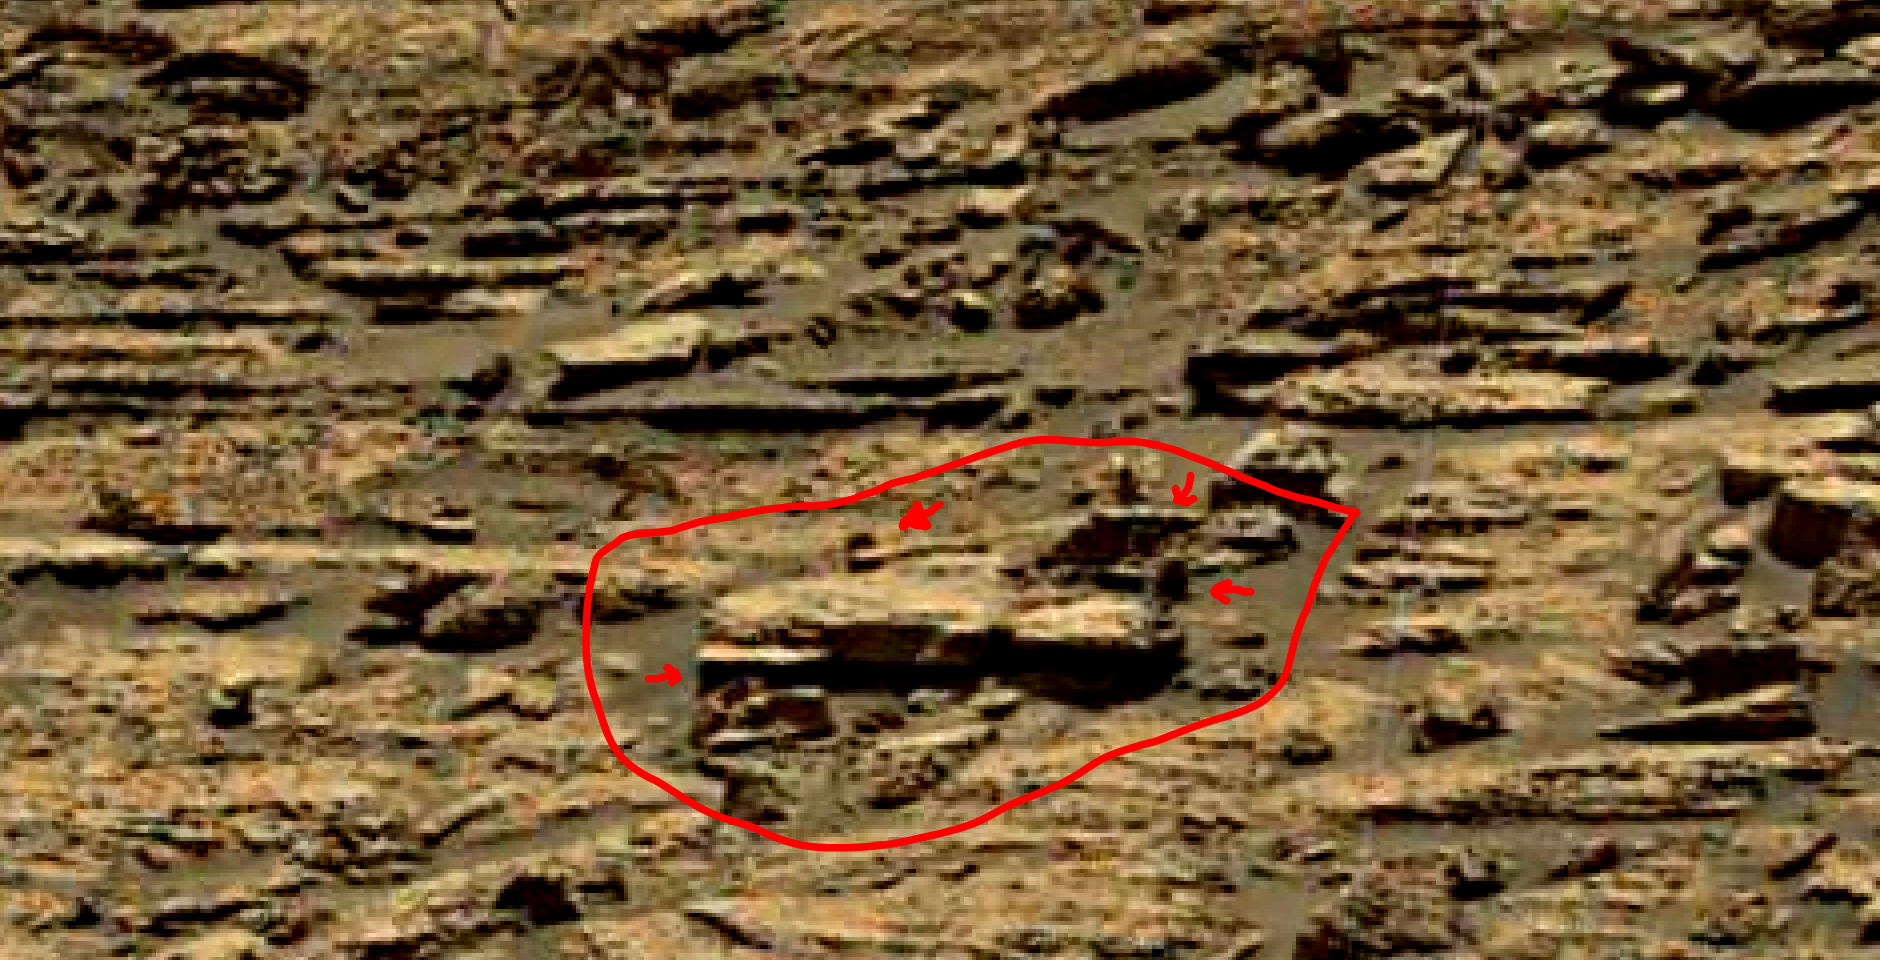 mars sol 1428 anomaly artifacts 6a was life on mars